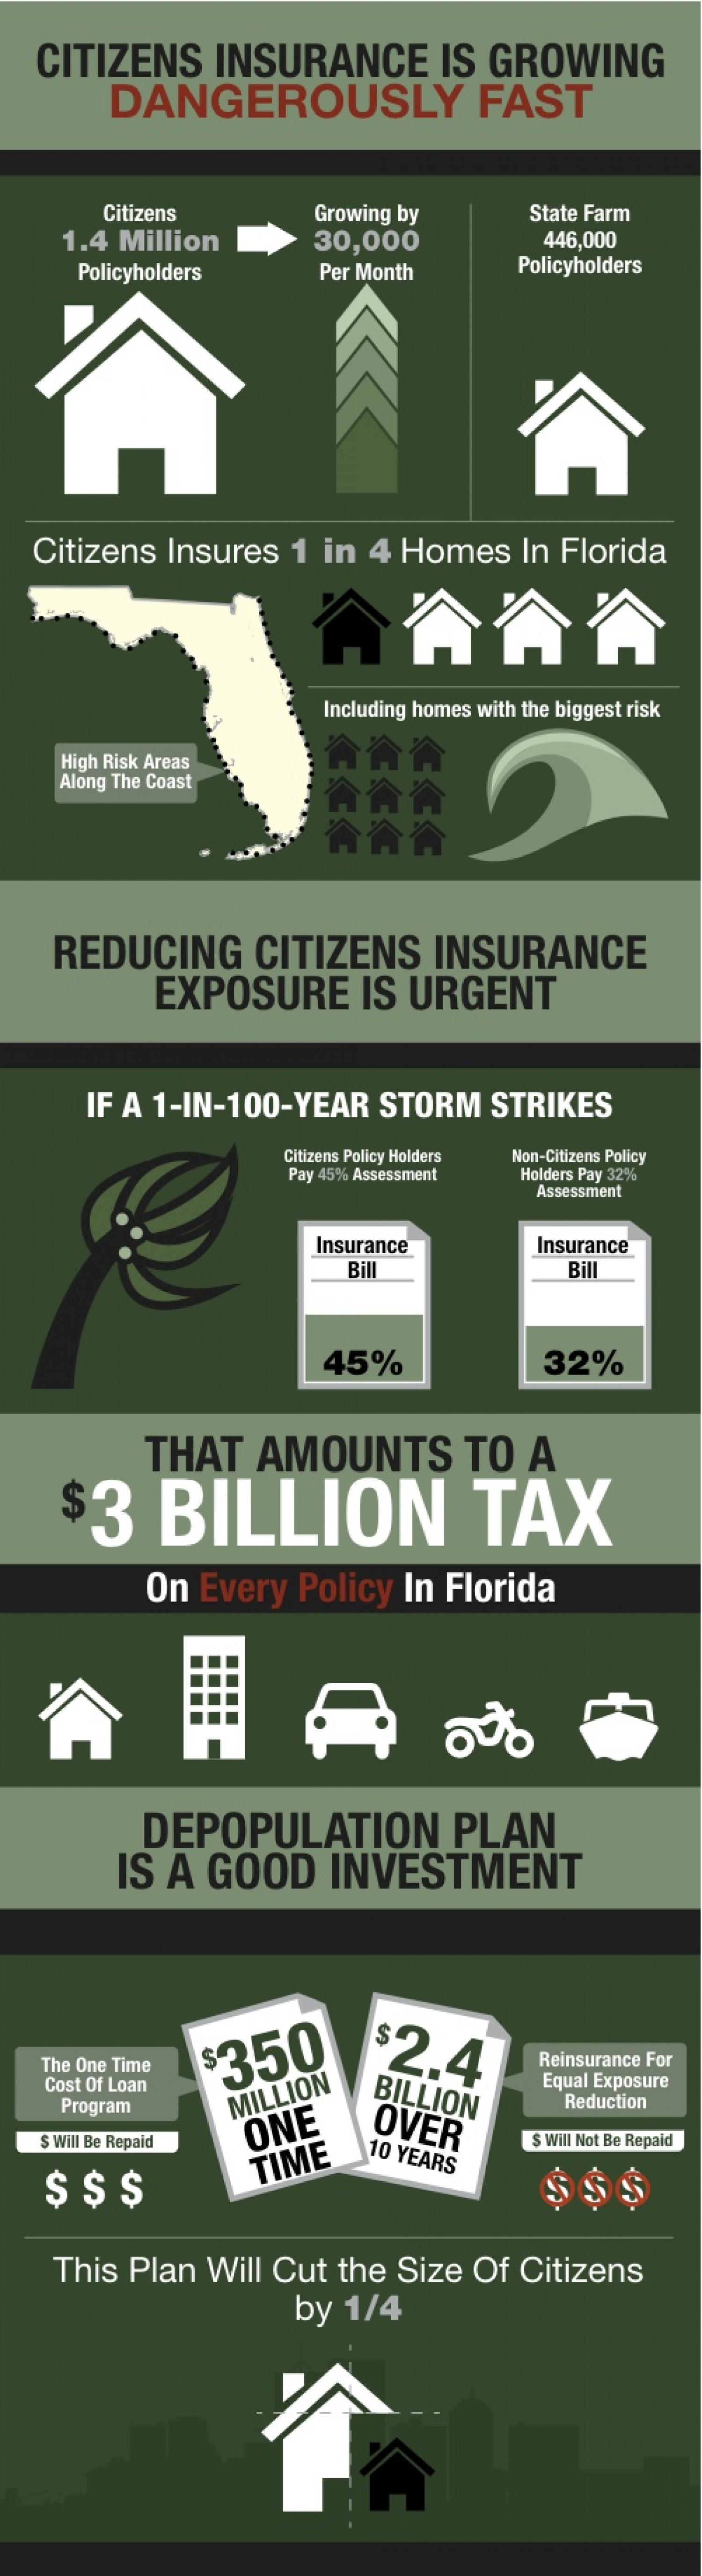 Citizens Insurance is Growing Dangerously Fast! Infographic